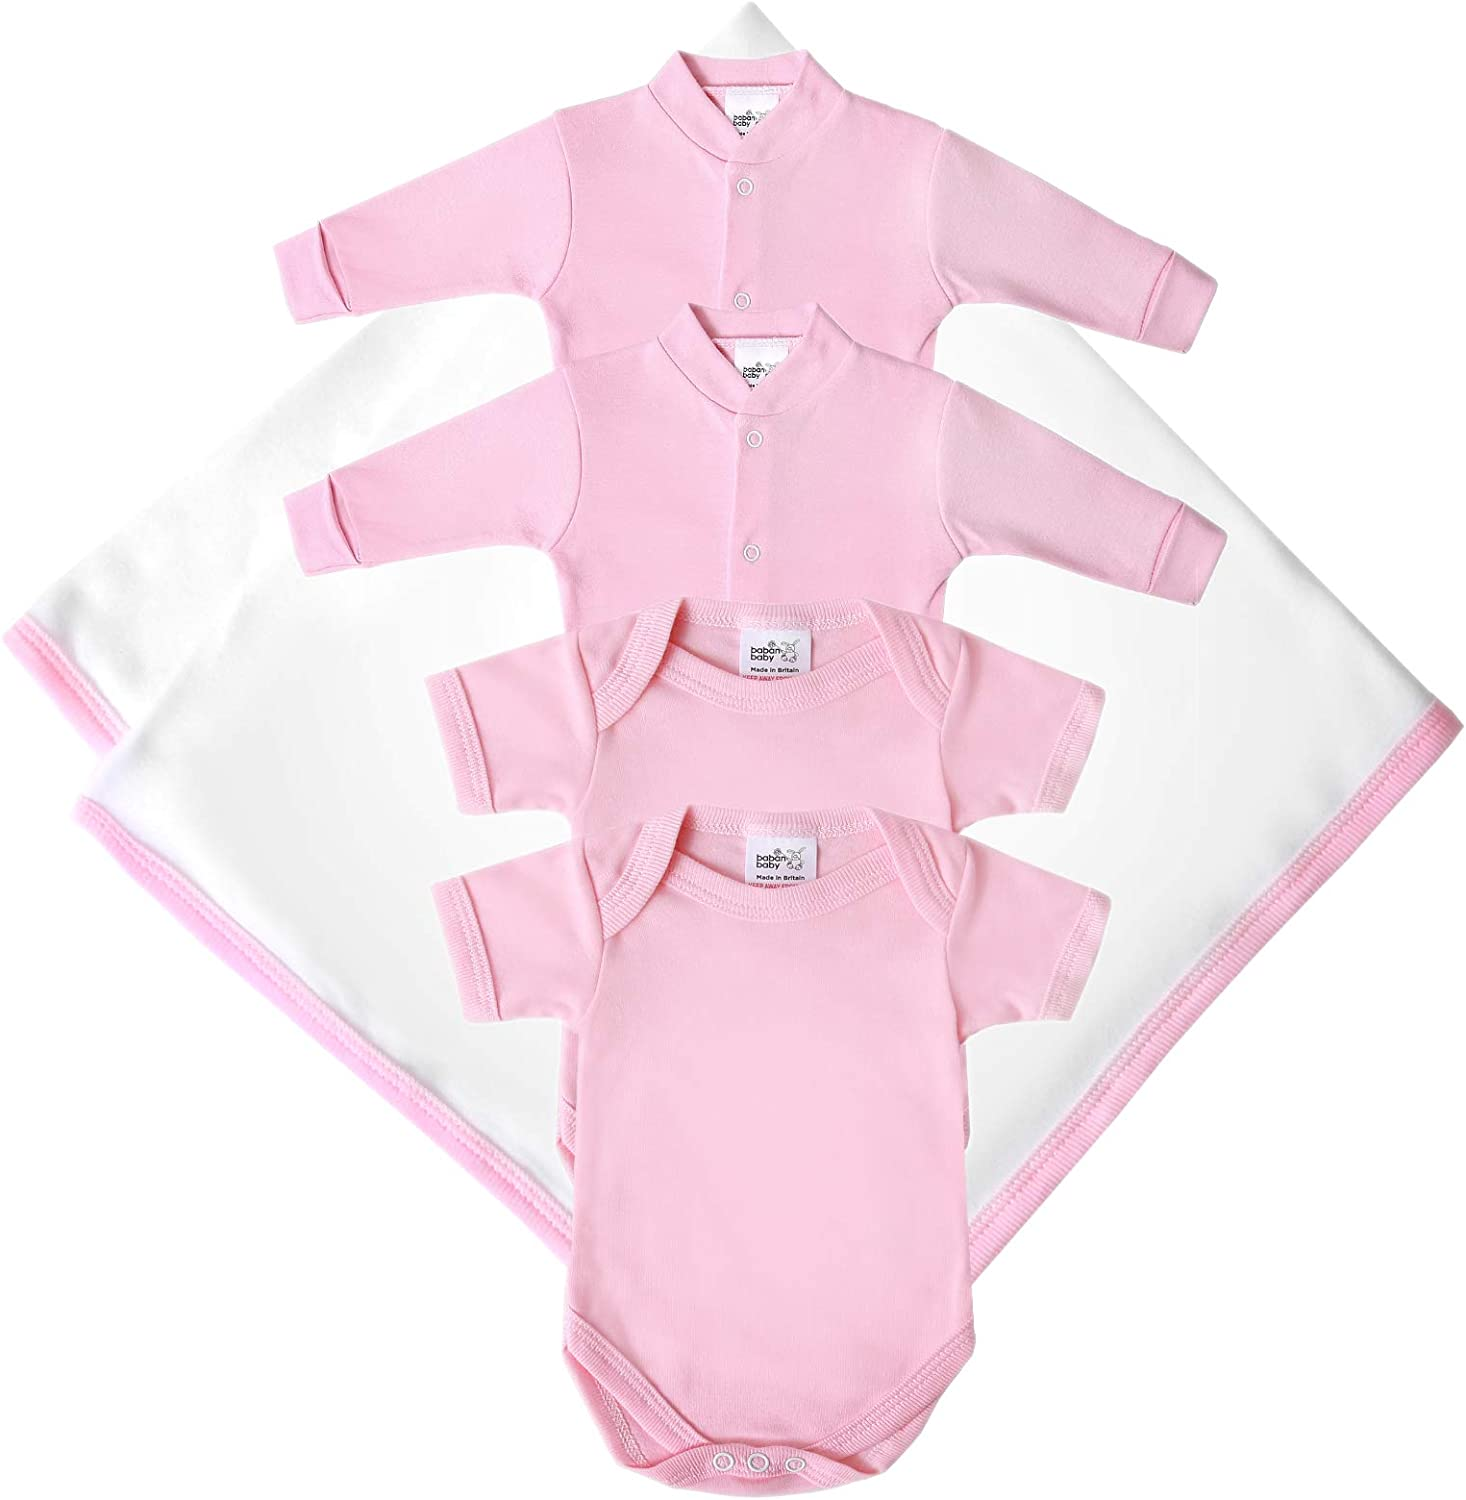 2 Bodysuits and a Blanket 2 Sleepsuits British Made Baby Clothing Gift Set Machine Washable 100/% Cotton